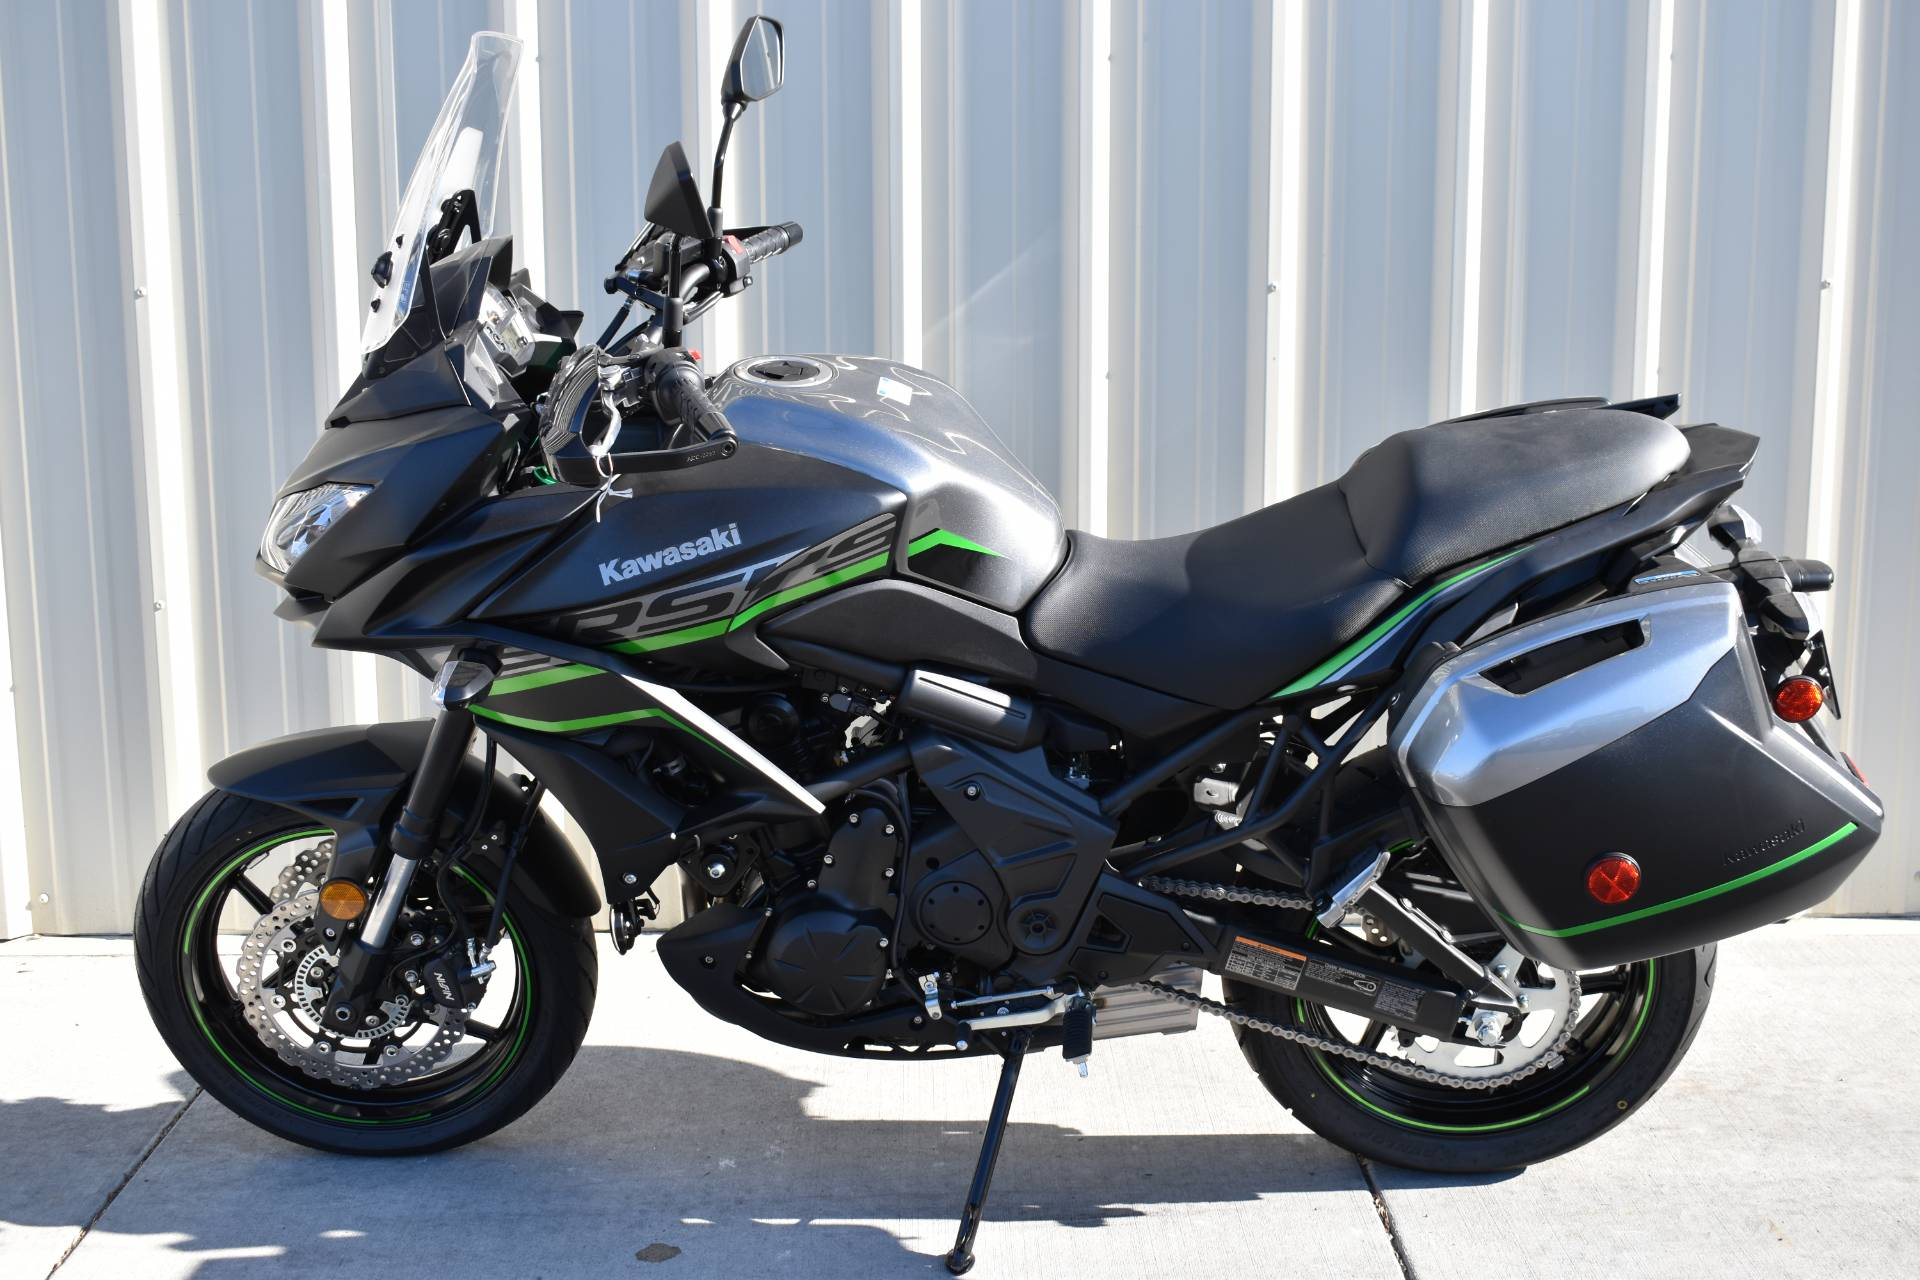 2019 Kawasaki Versys 650 LT in Boise, Idaho - Photo 3